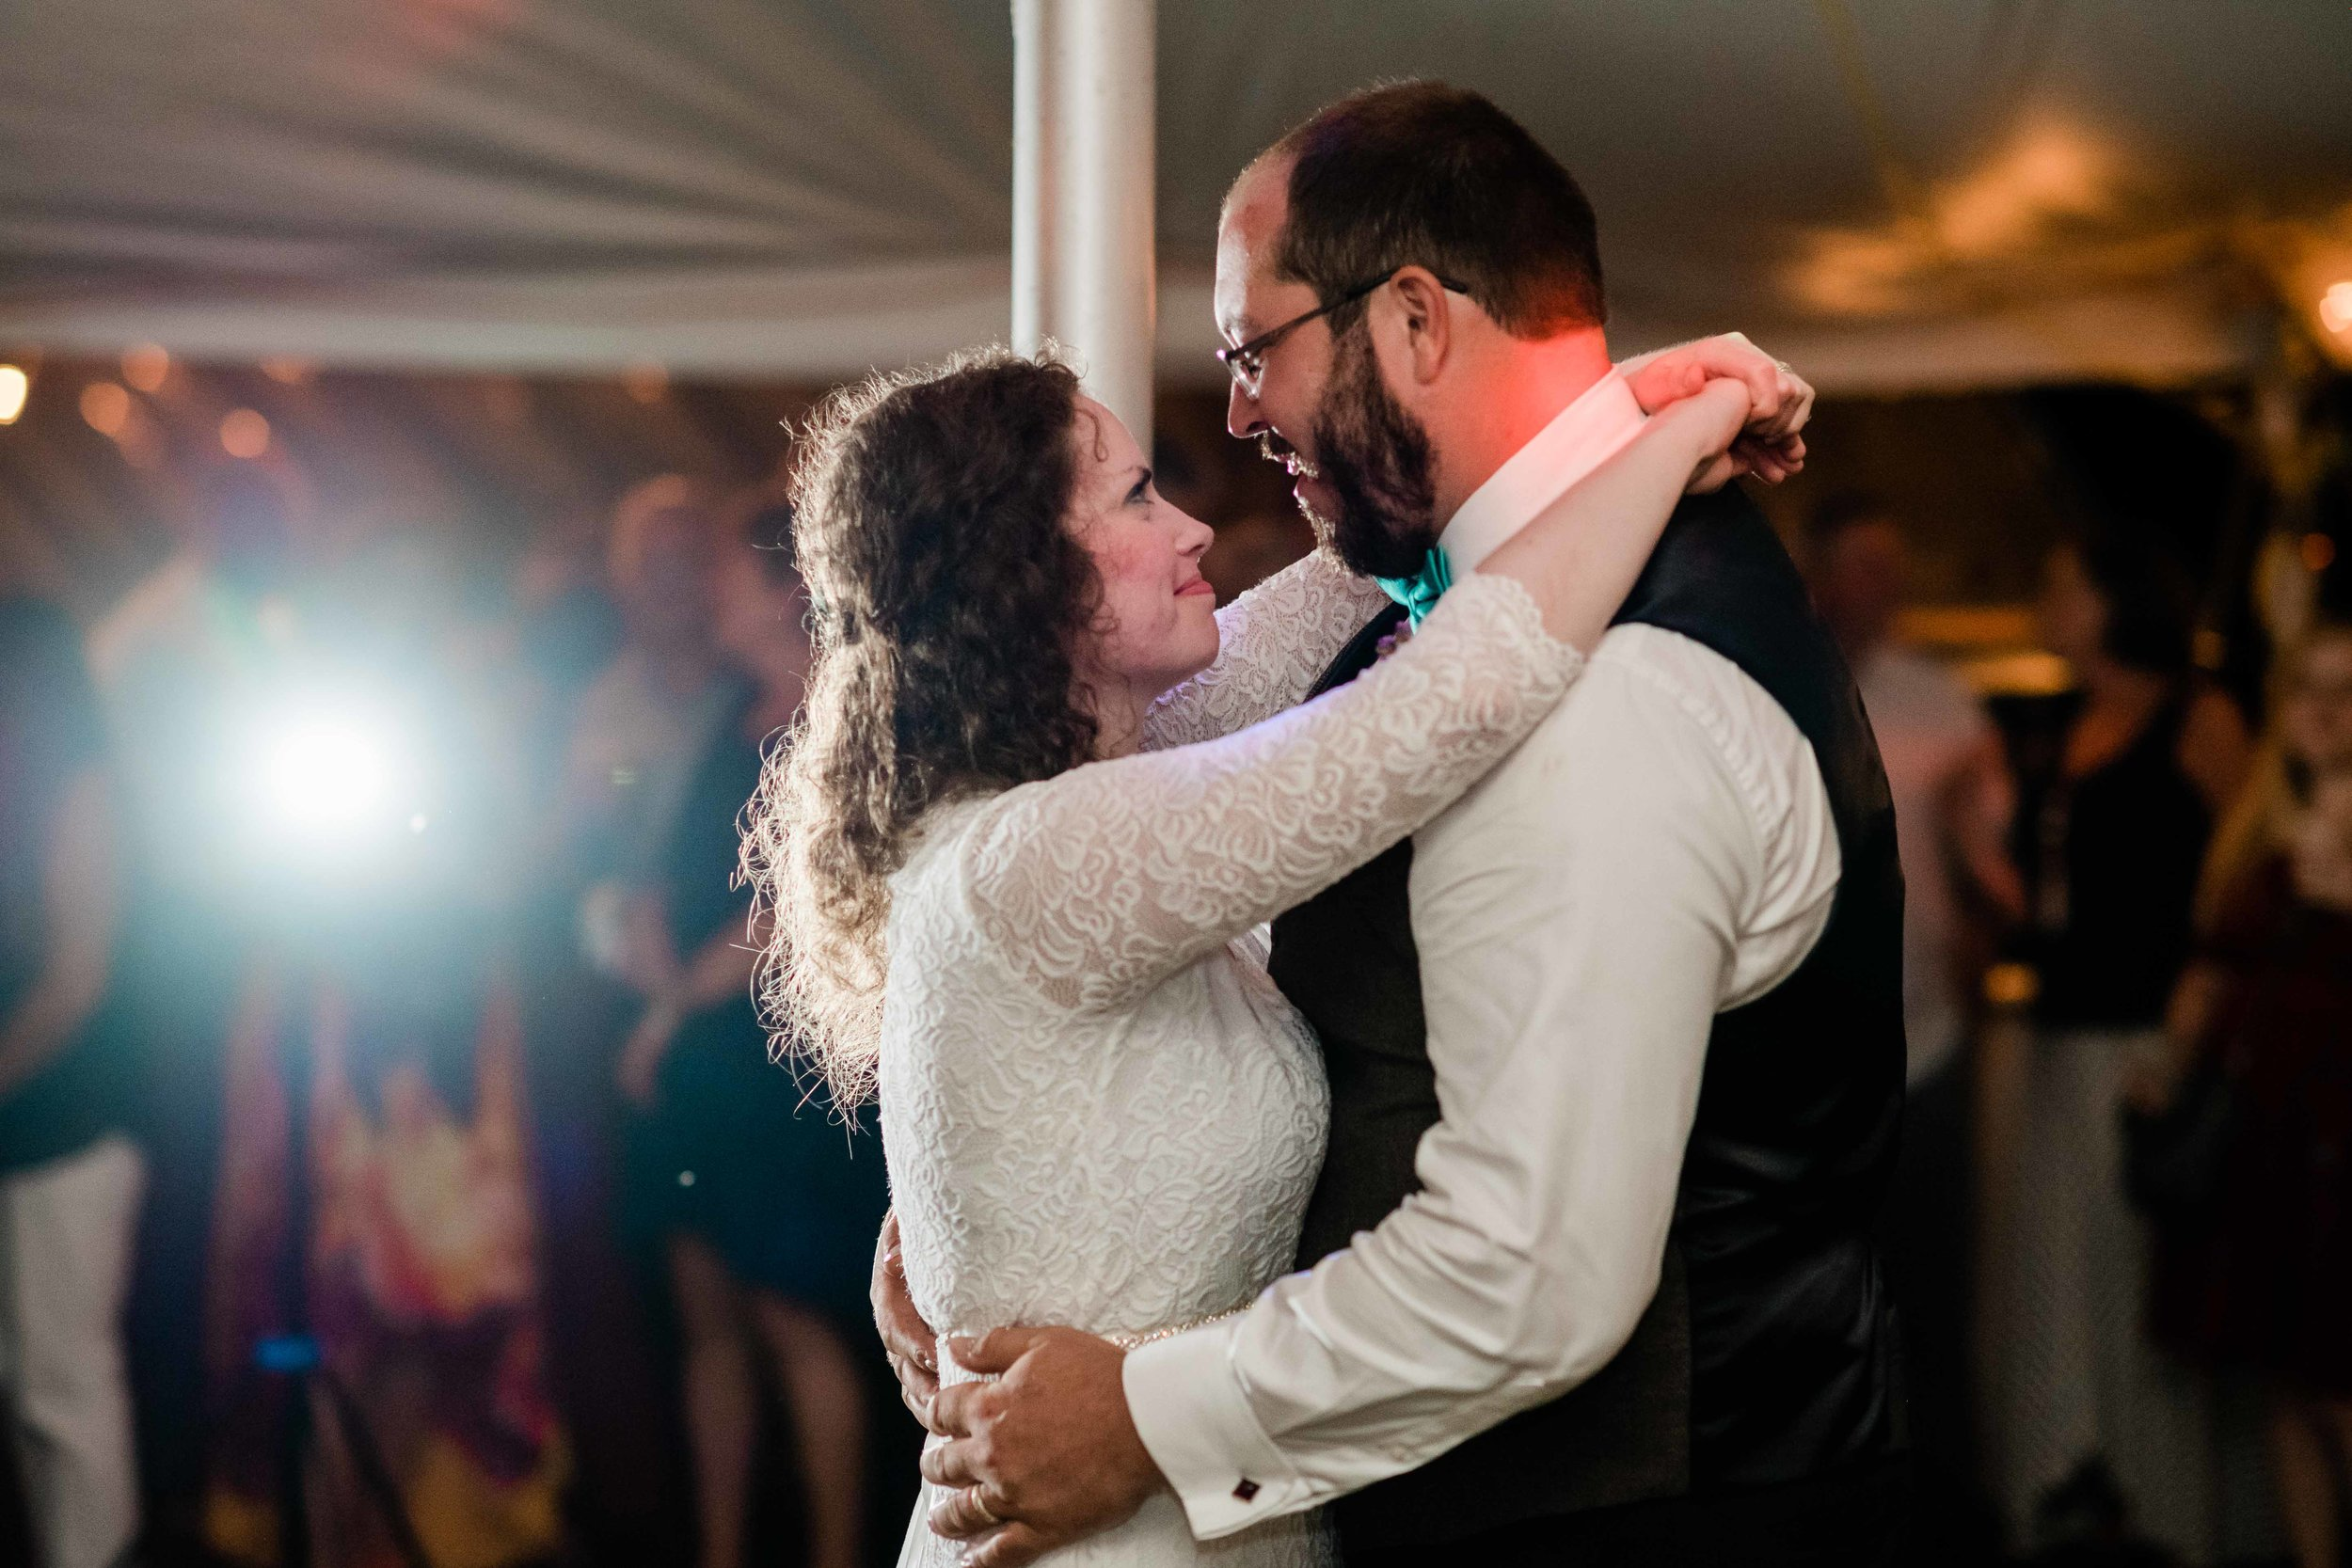 Bride and groom look into each other's eyes during first dance